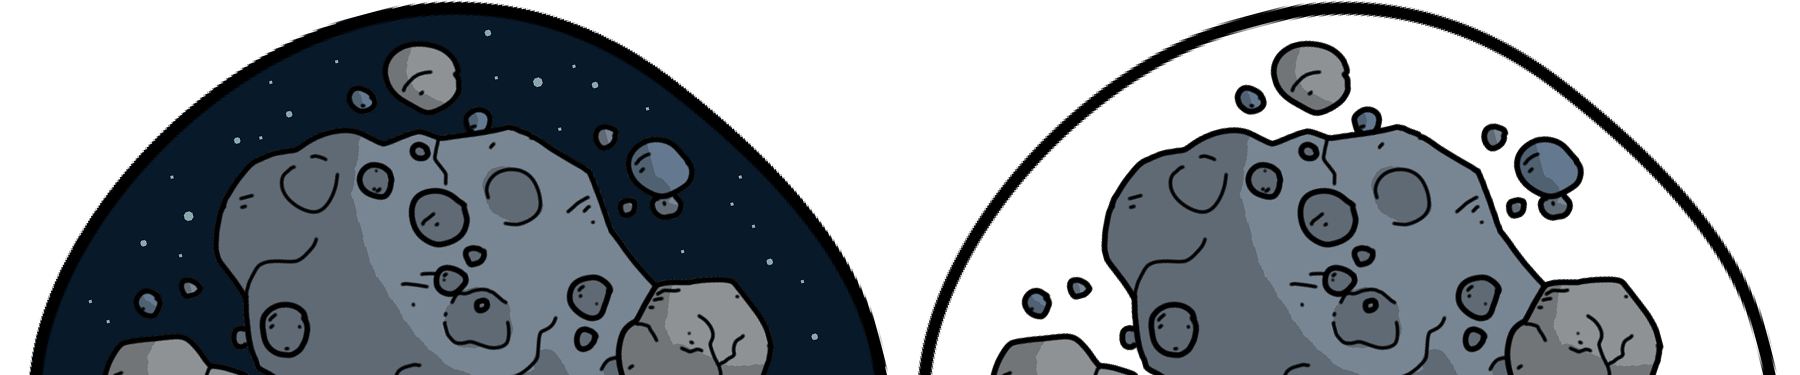 space-preview-b.png